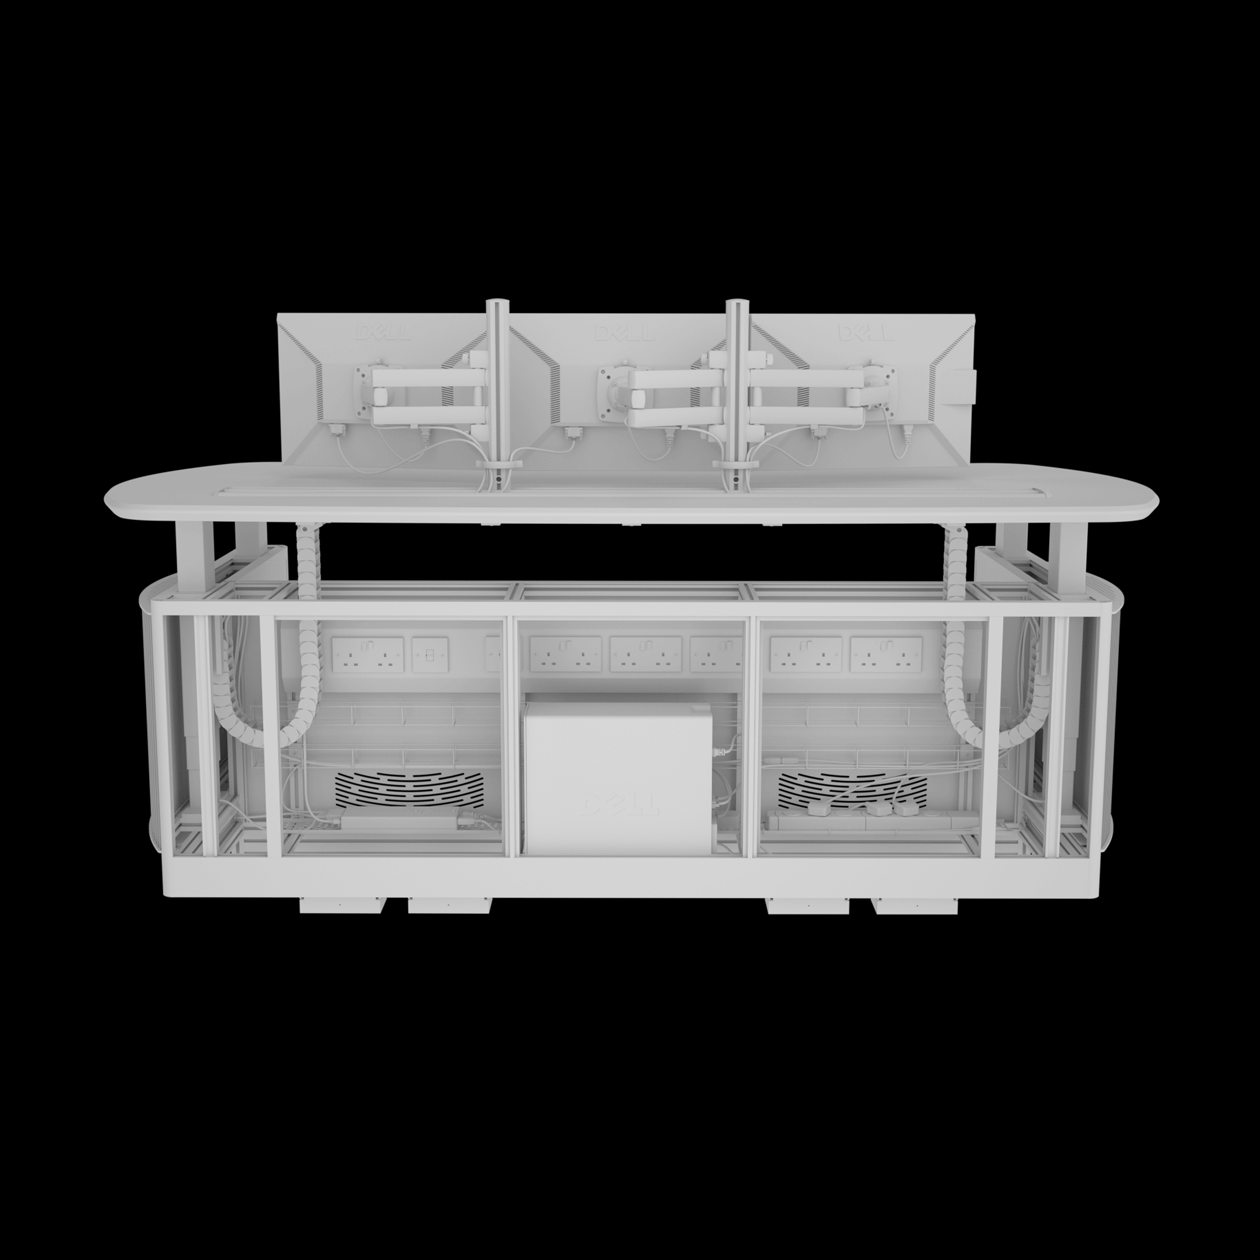 Shaded render of a desk made of framework showing cable management